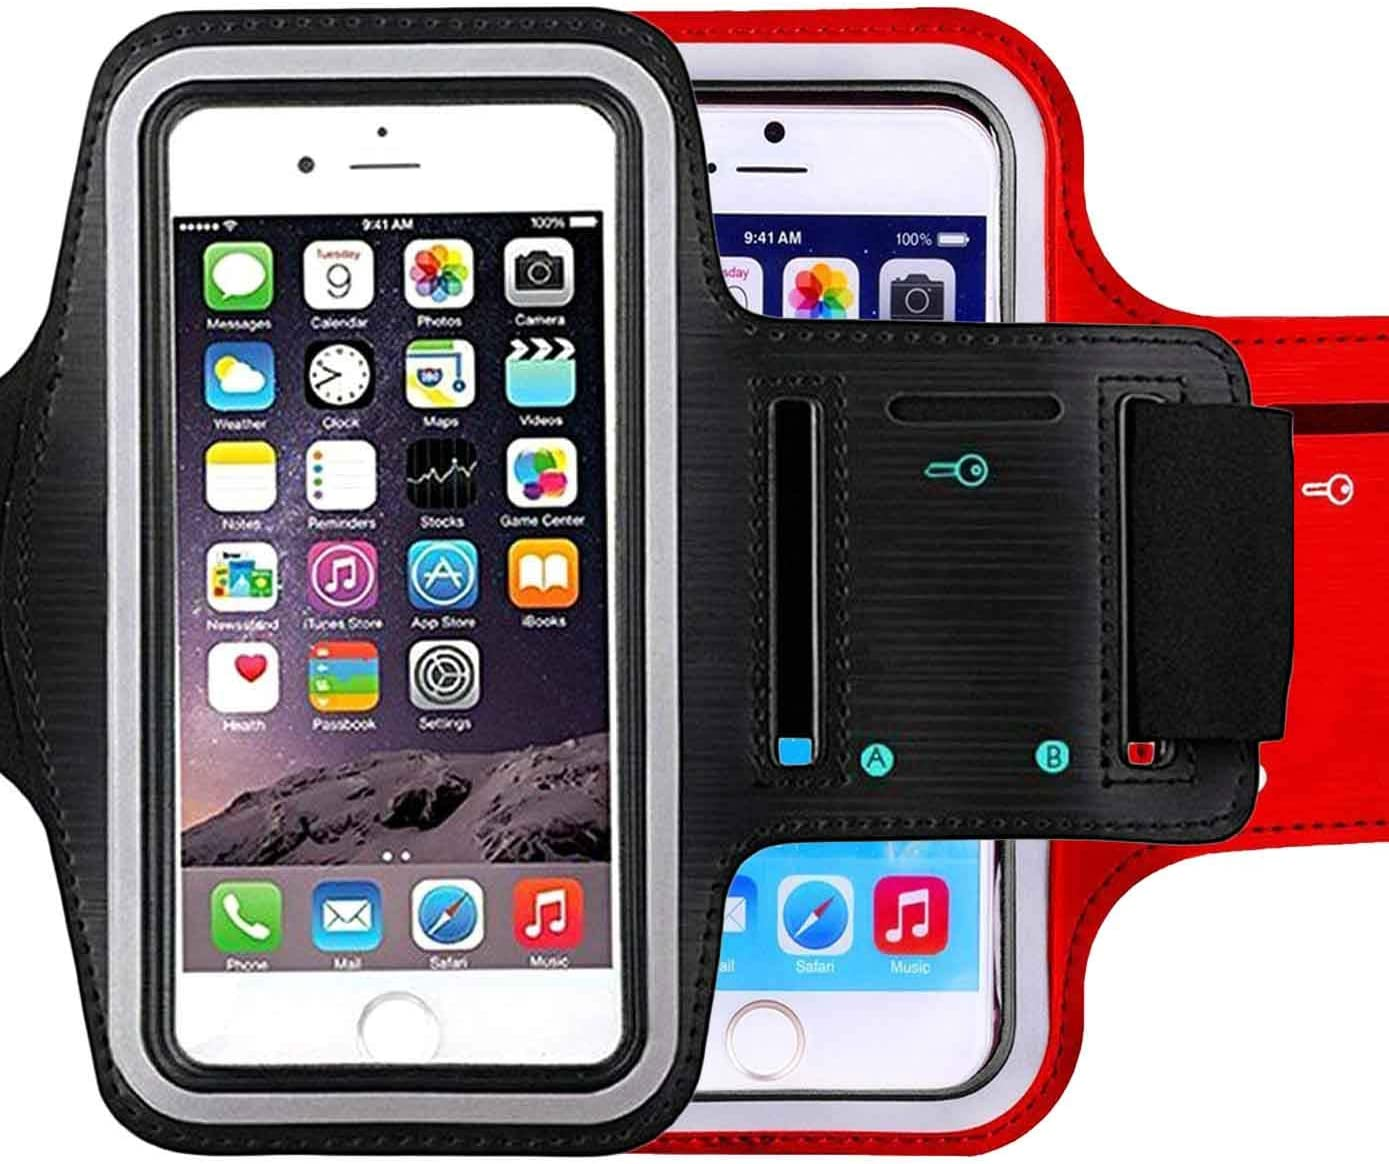 [2pack] Running Armband,iBarbe for iPhone X/8 Plus/8/7 Plus/7/6S Plus/6S/6/5S/SE,Sports Workout Cell Phone Holder for Samsung Galaxy S8/S7 Edge/S6, Google Pixel/Nexus 6P, LG and More (Black+red)